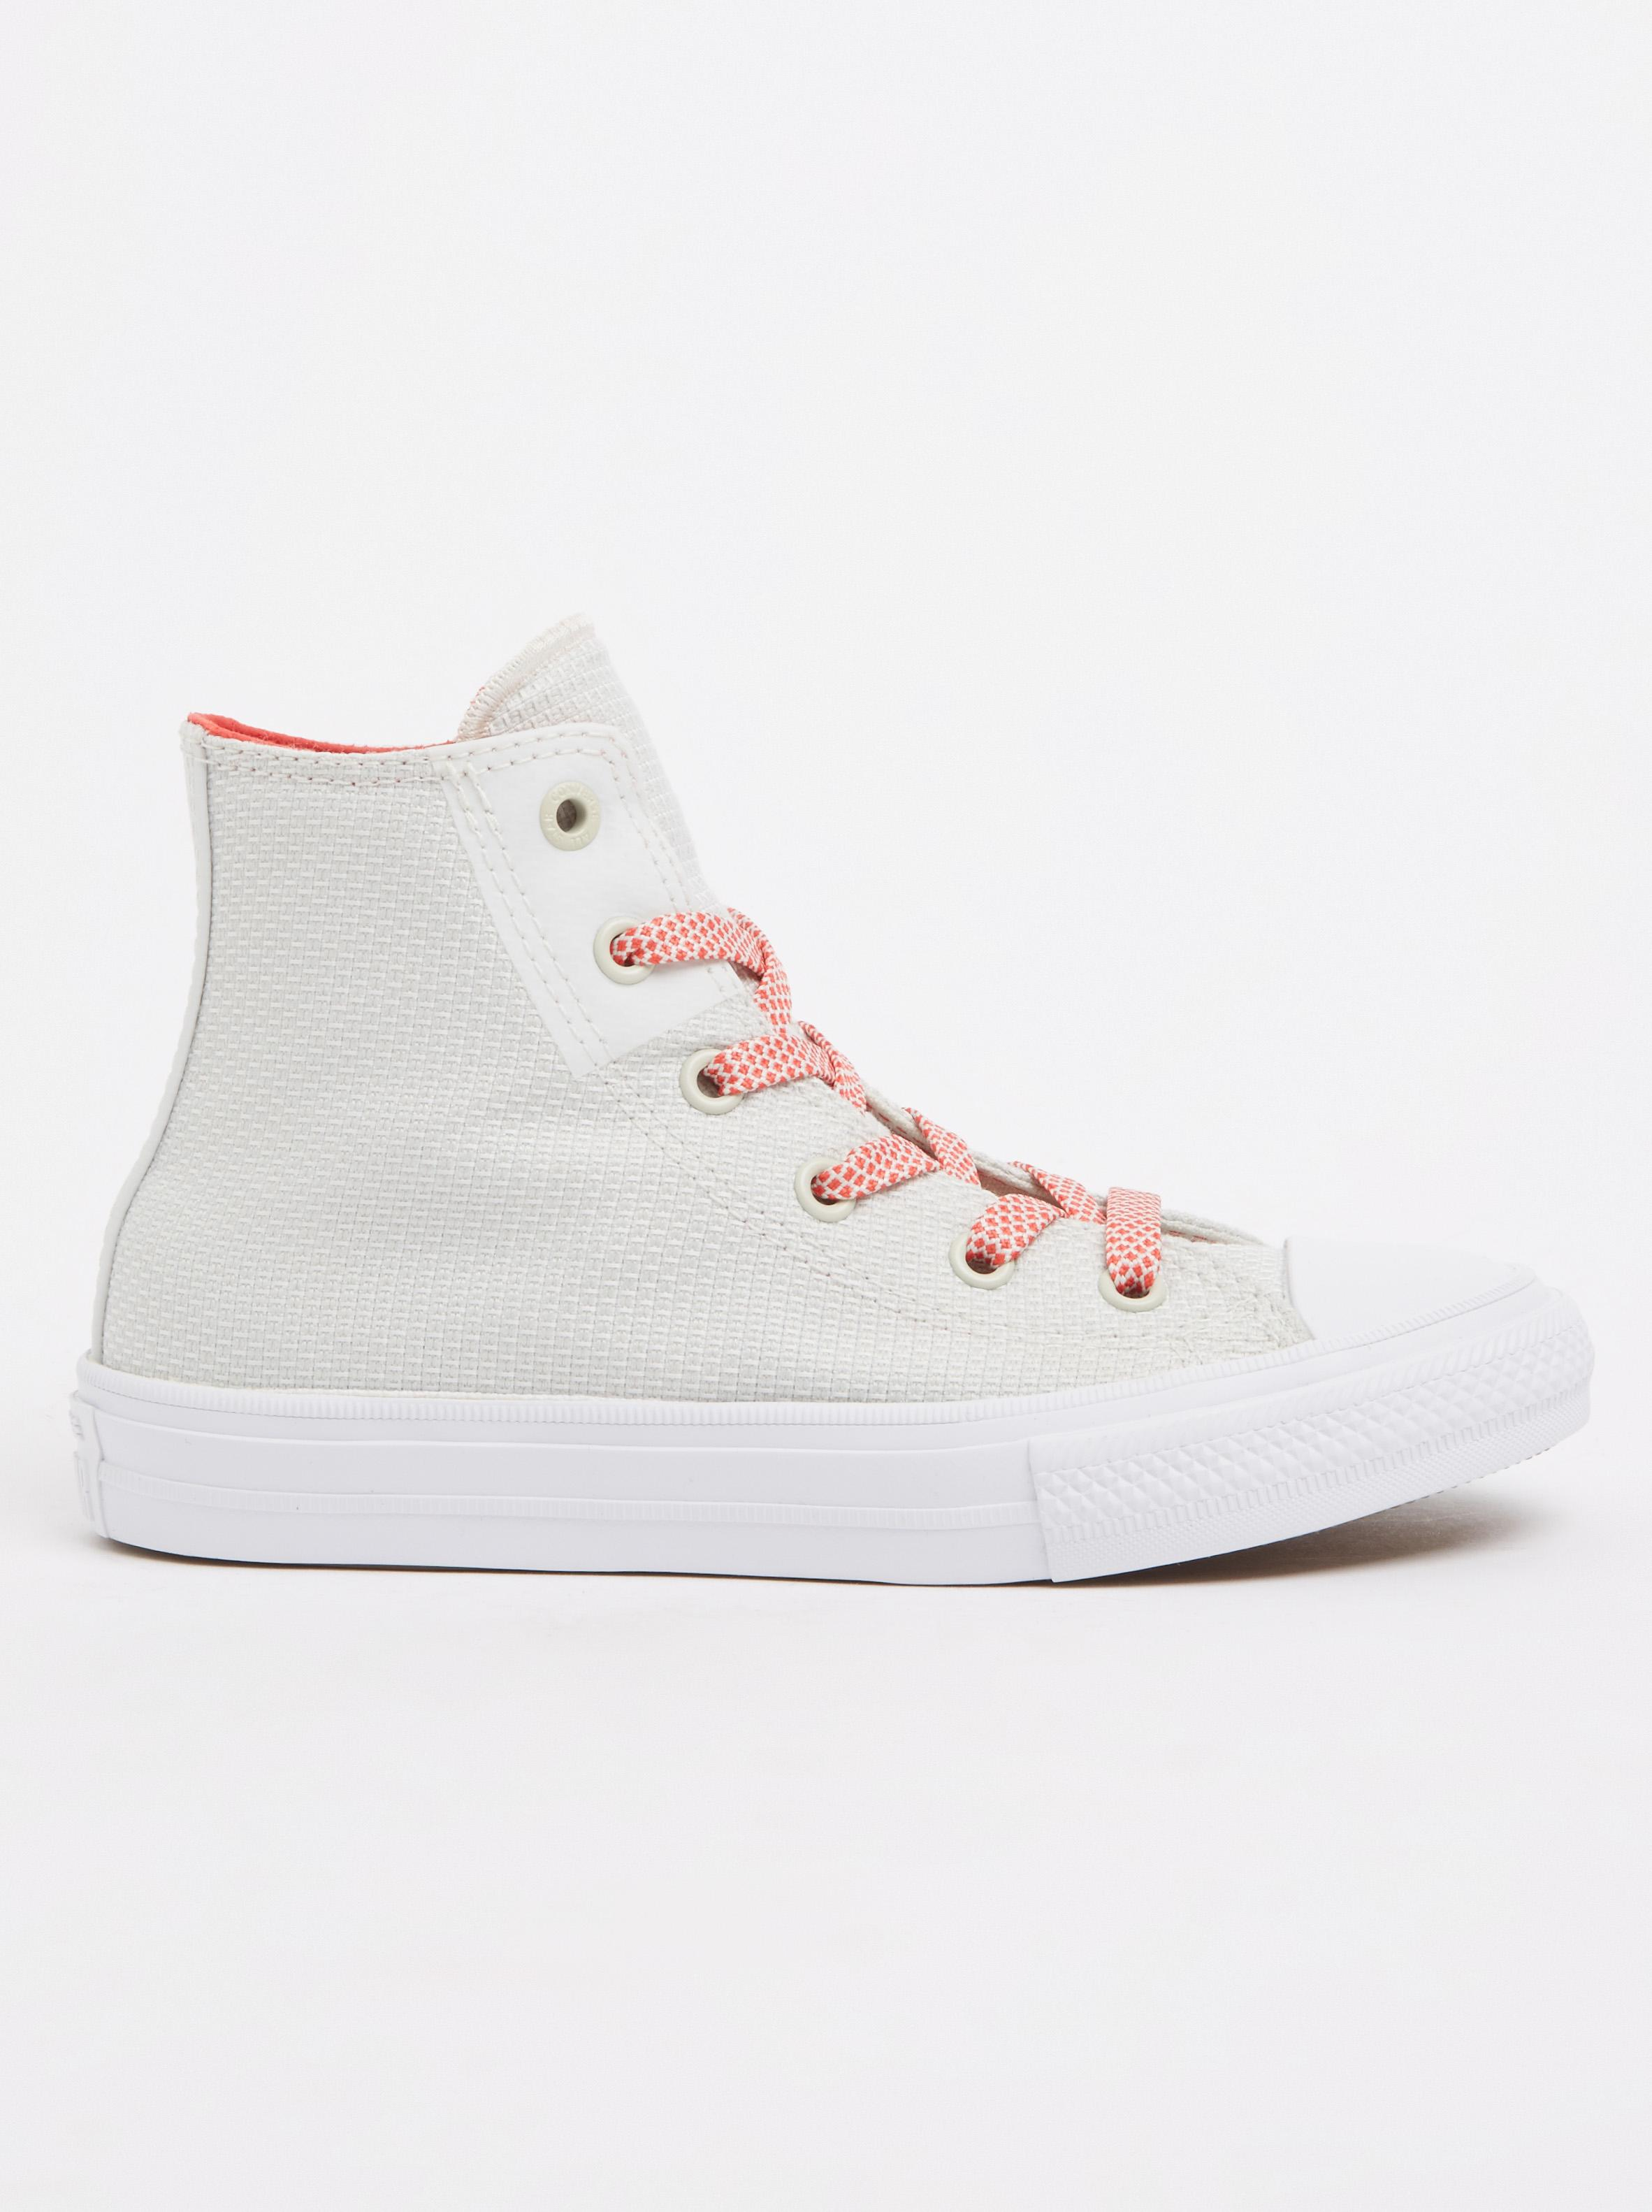 4cb7668c99f6 Chuck Taylor All Star Off White Converse Shoes